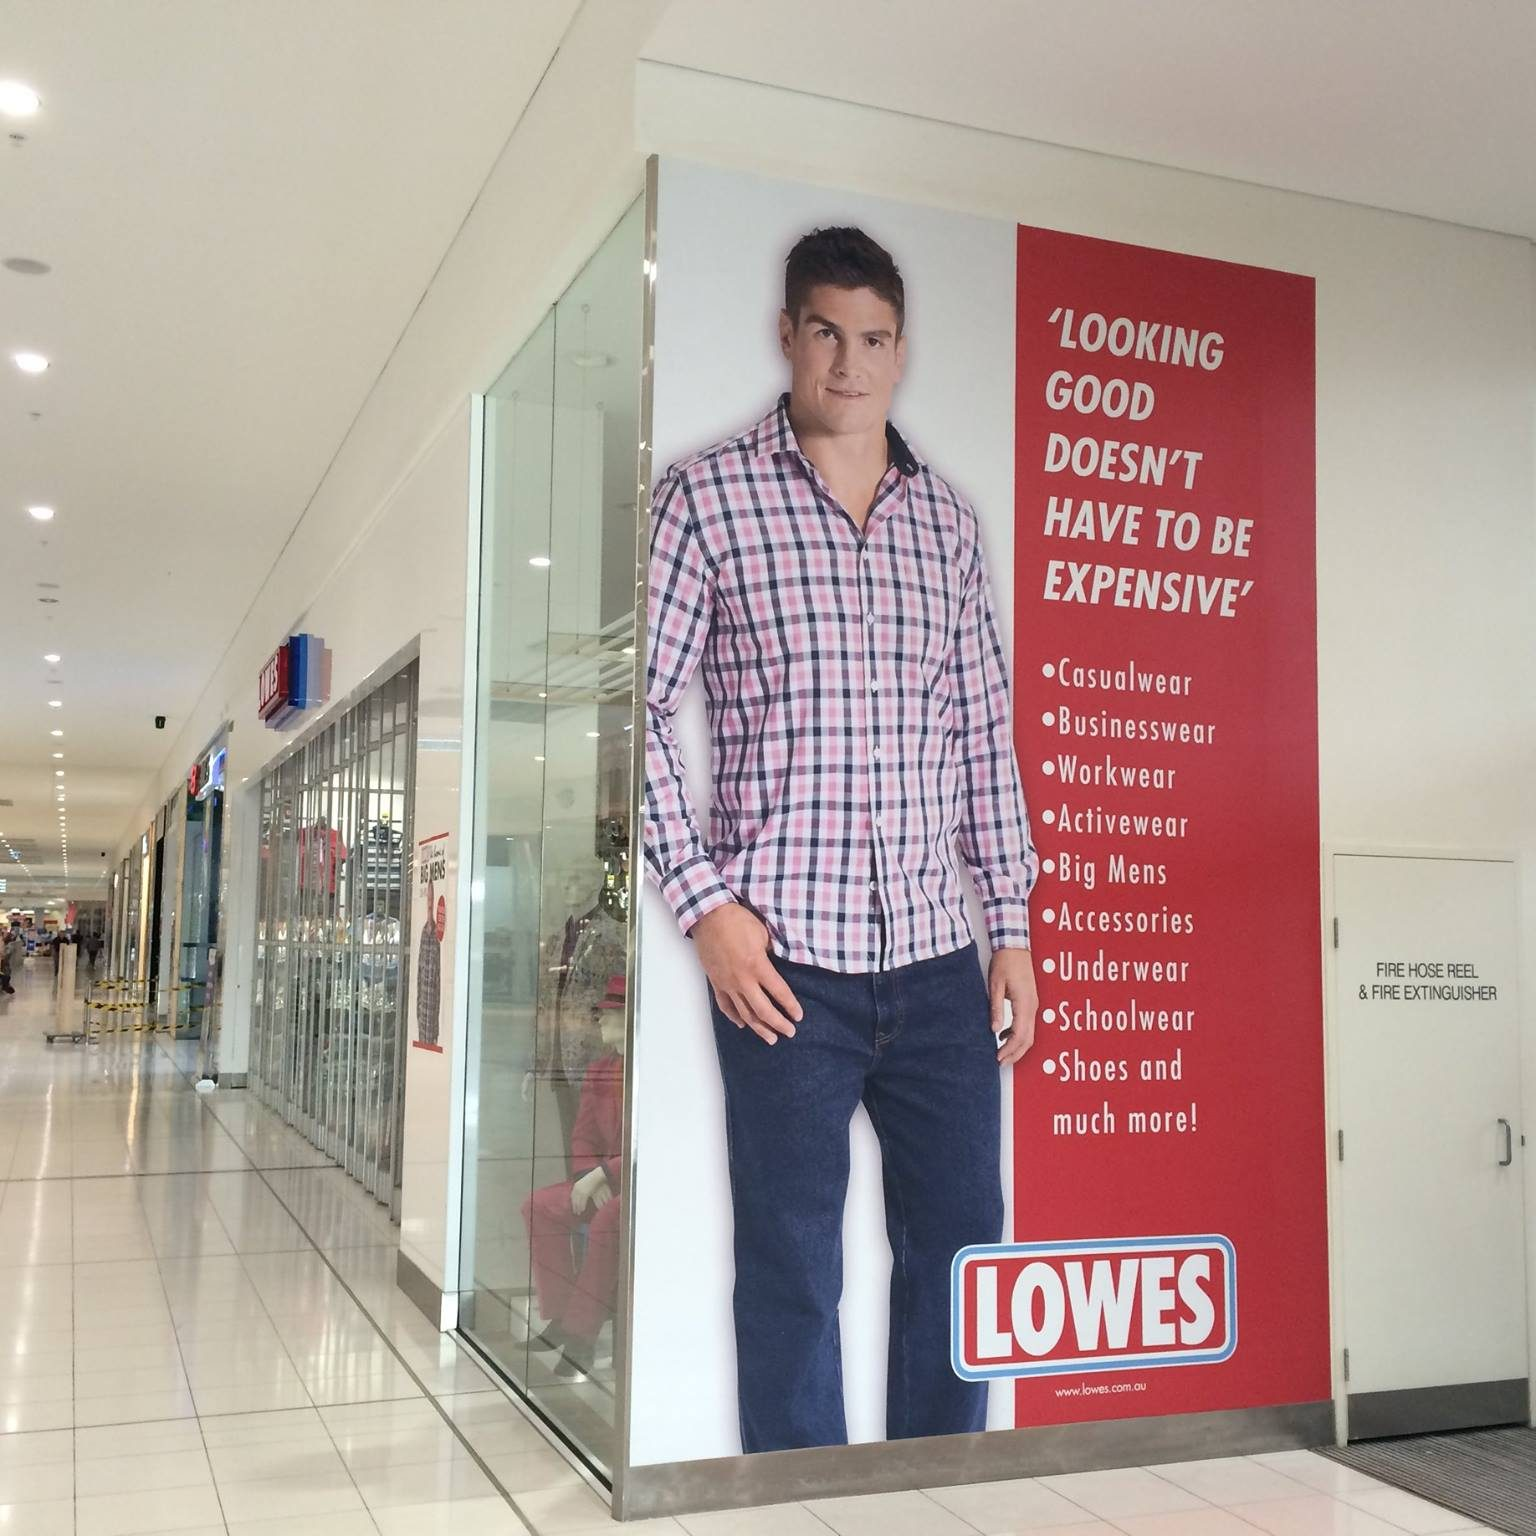 Looking good doesn't have to be expensive. Make an impact with shopfront signage